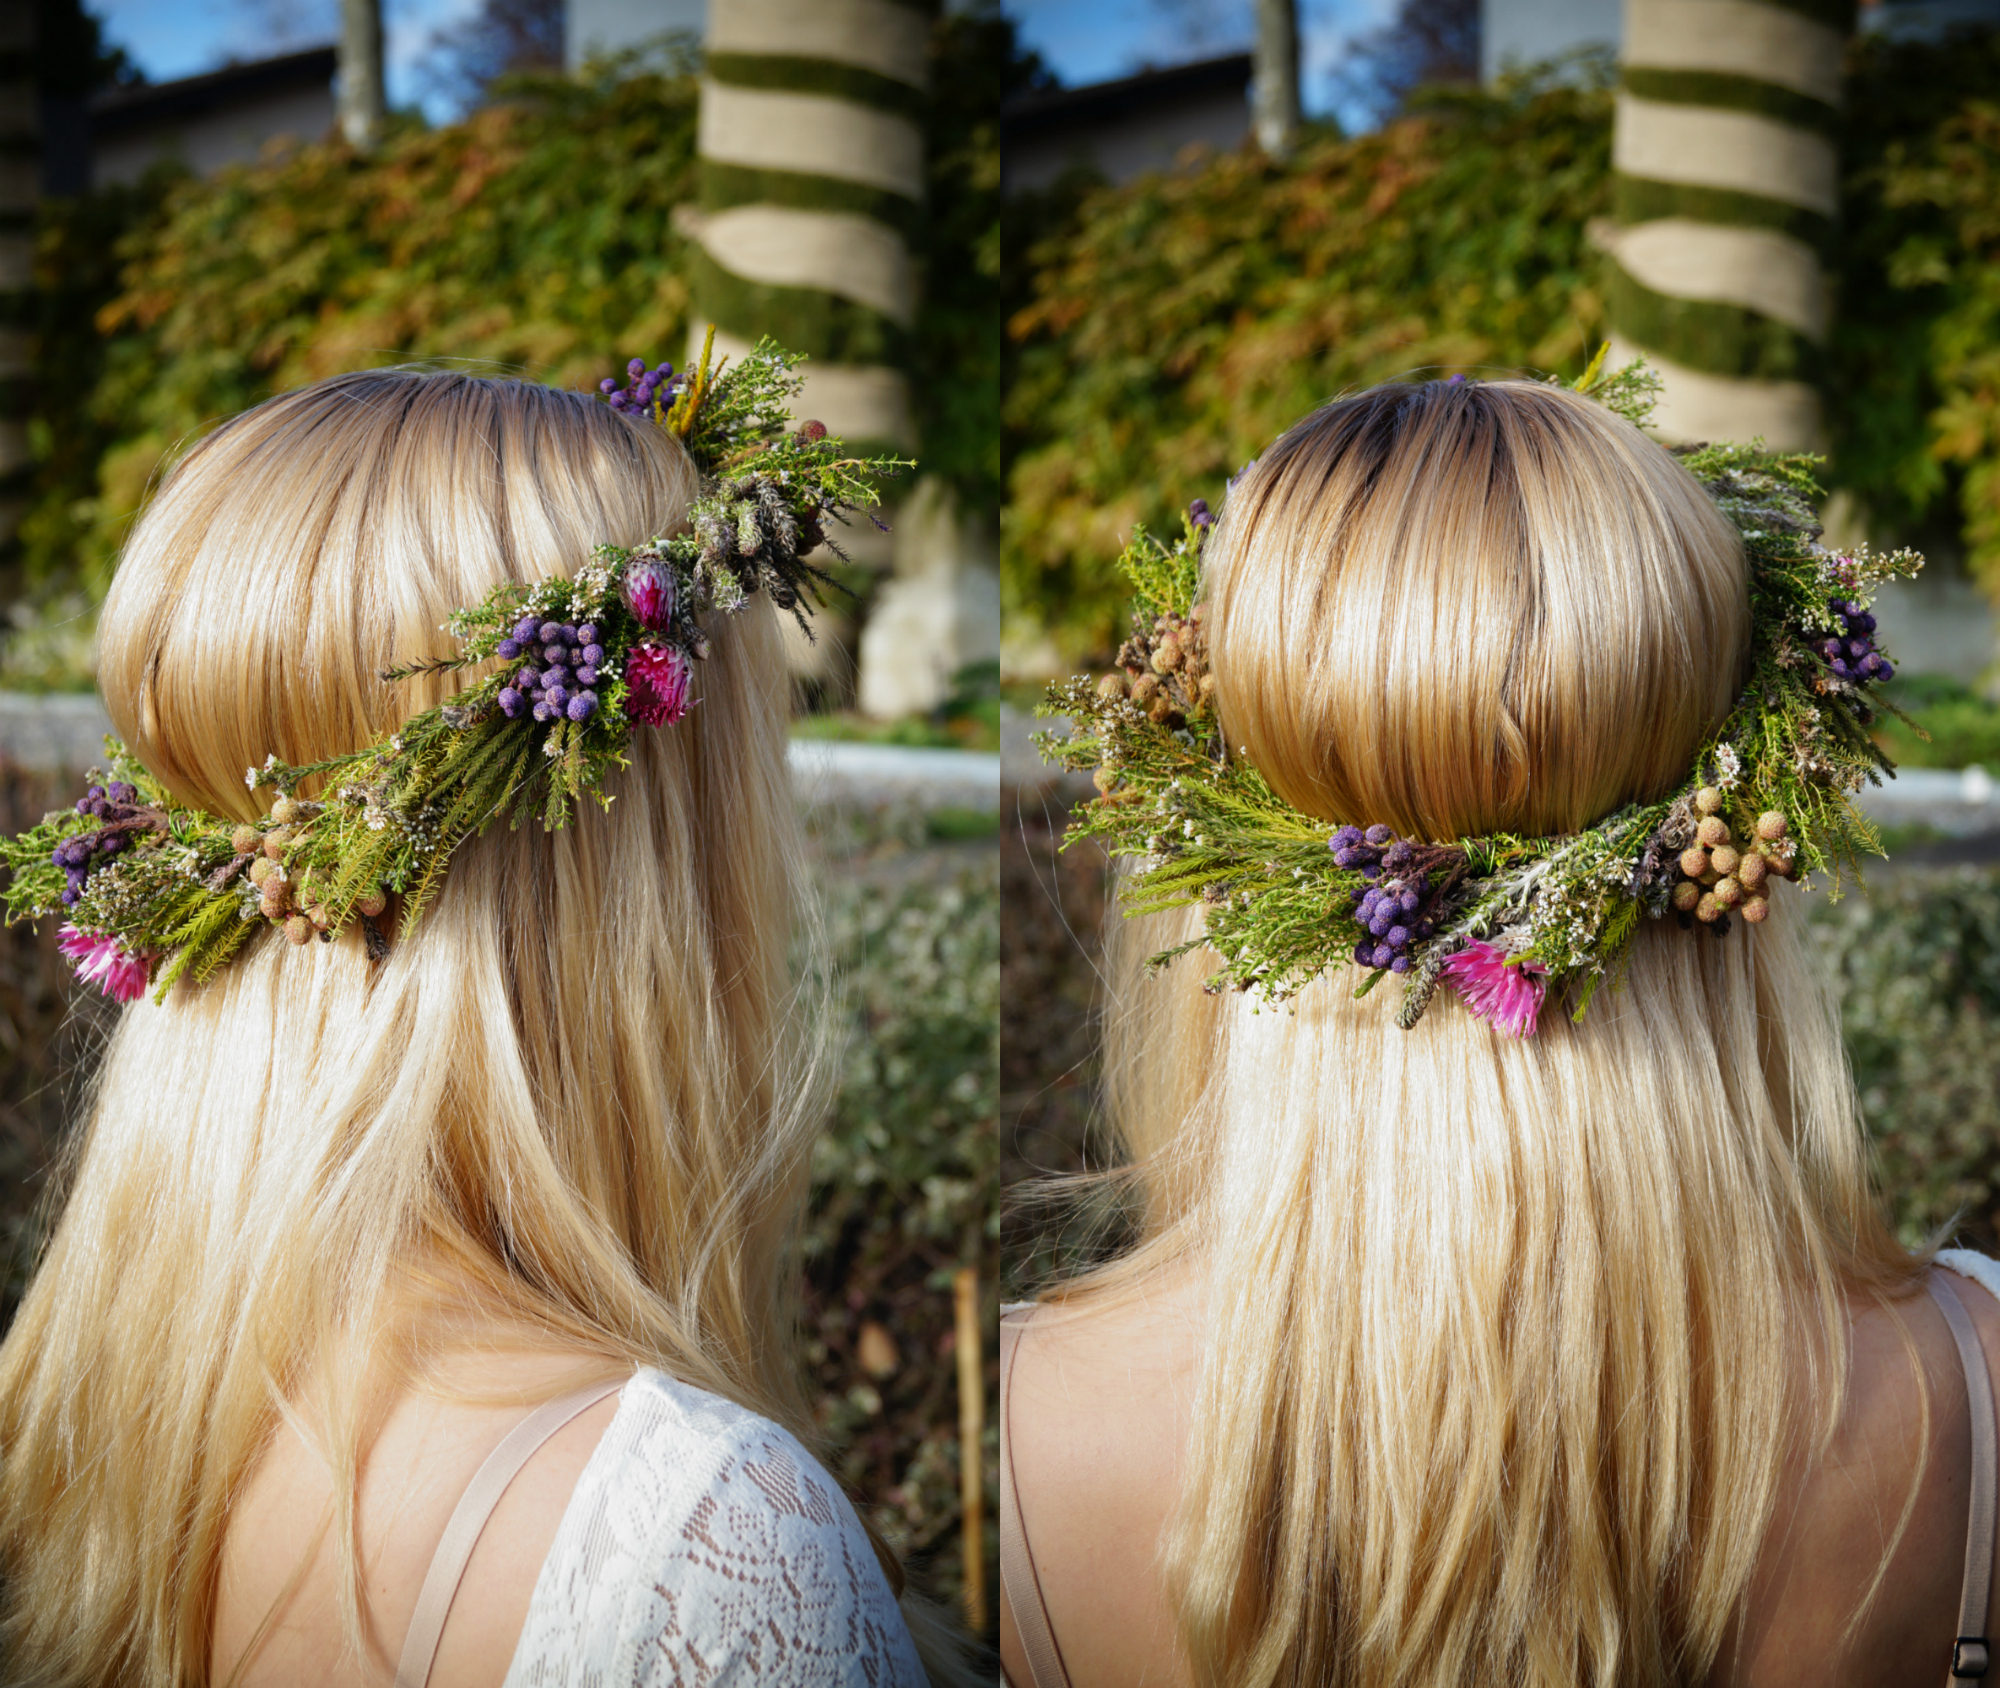 How to do a DIY Flower Hair Band